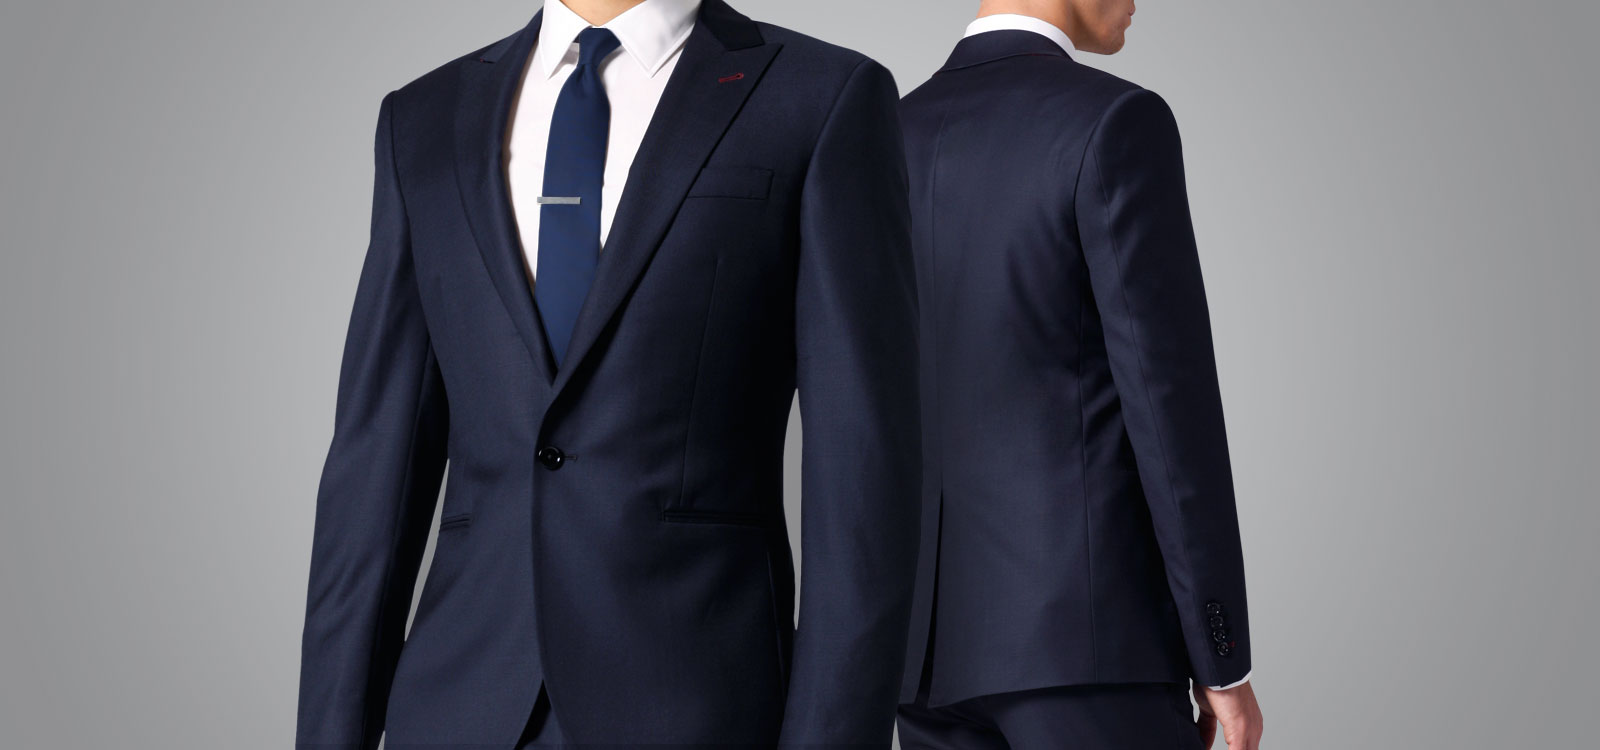 Slim Suits For Men | Mens Slim Suits | Slim Suits Online